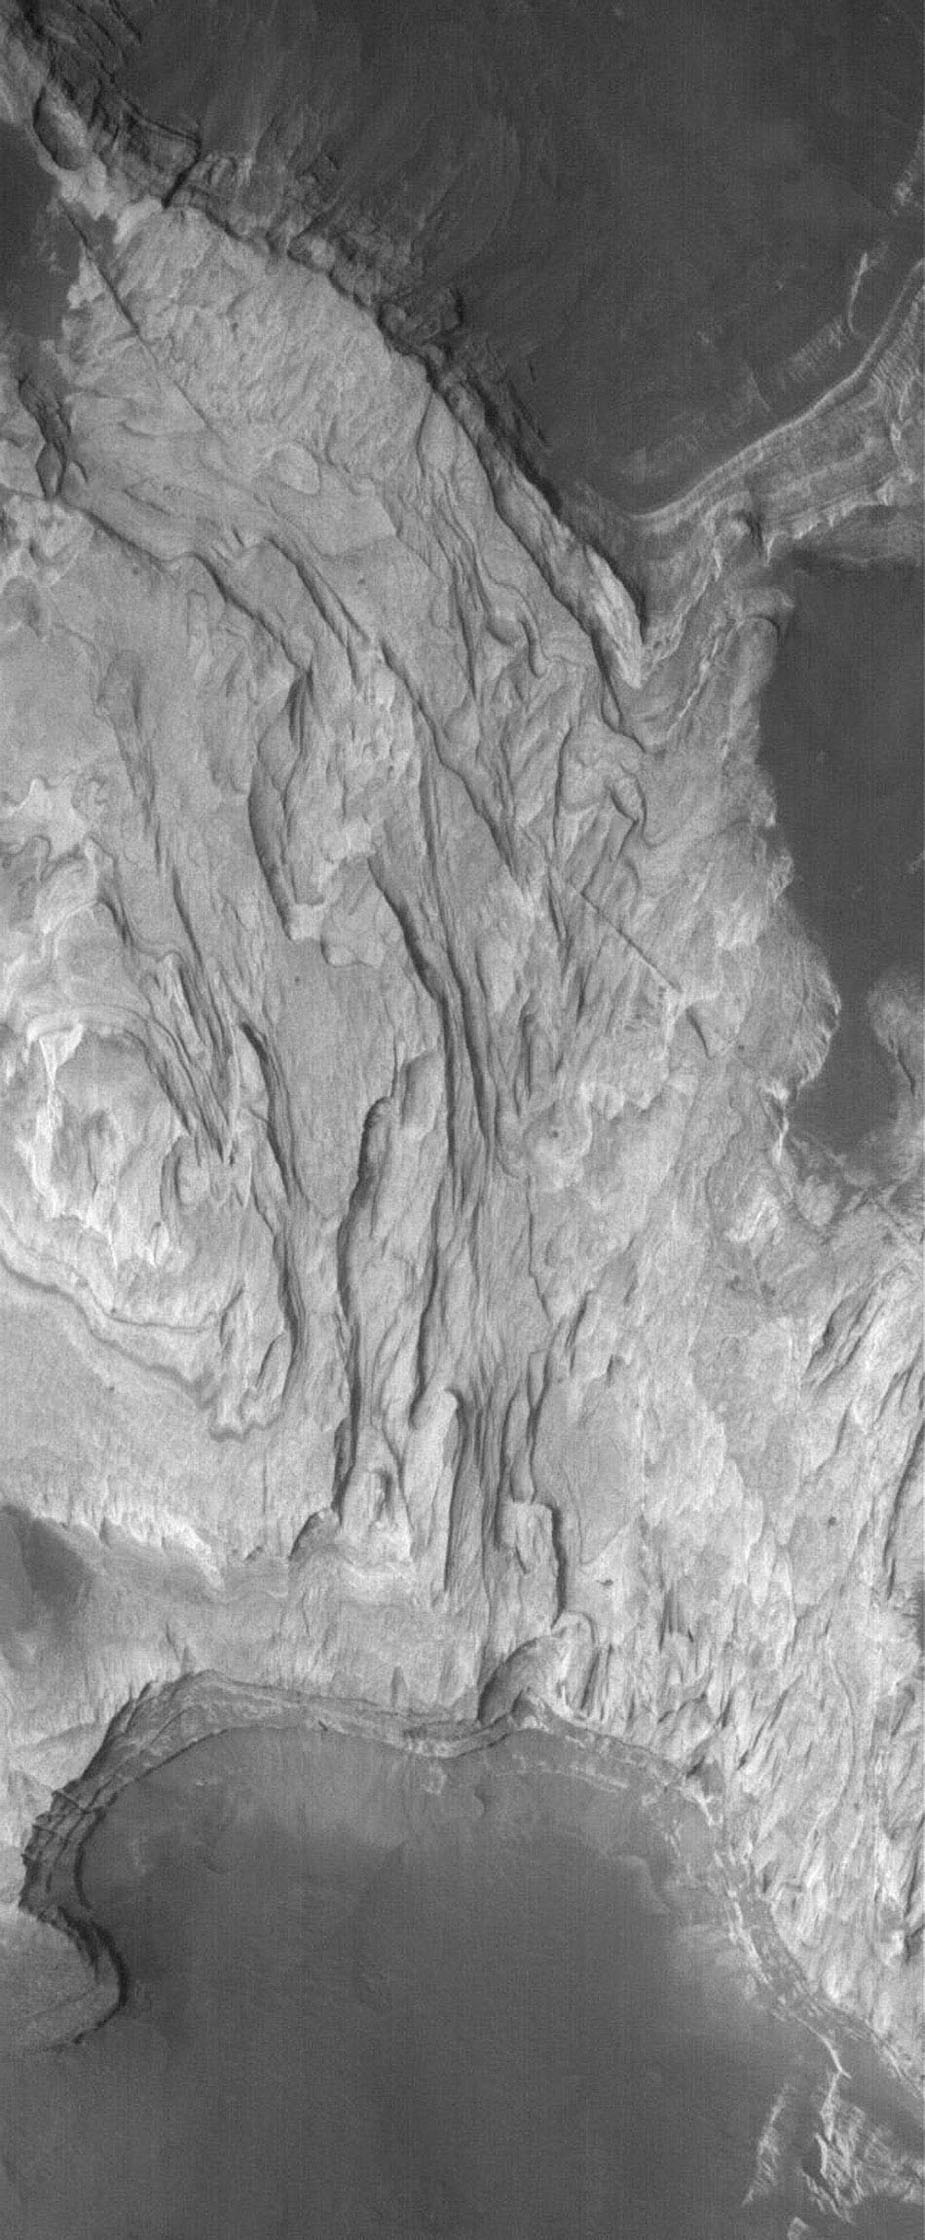 NASA's Mars Global Surveyor shows light-toned, layered, sedimentary rocks exposed by erosion in Terby Crater, located on the north rim of the Hellas Basin. Sedimentary rocks are common on Mars.